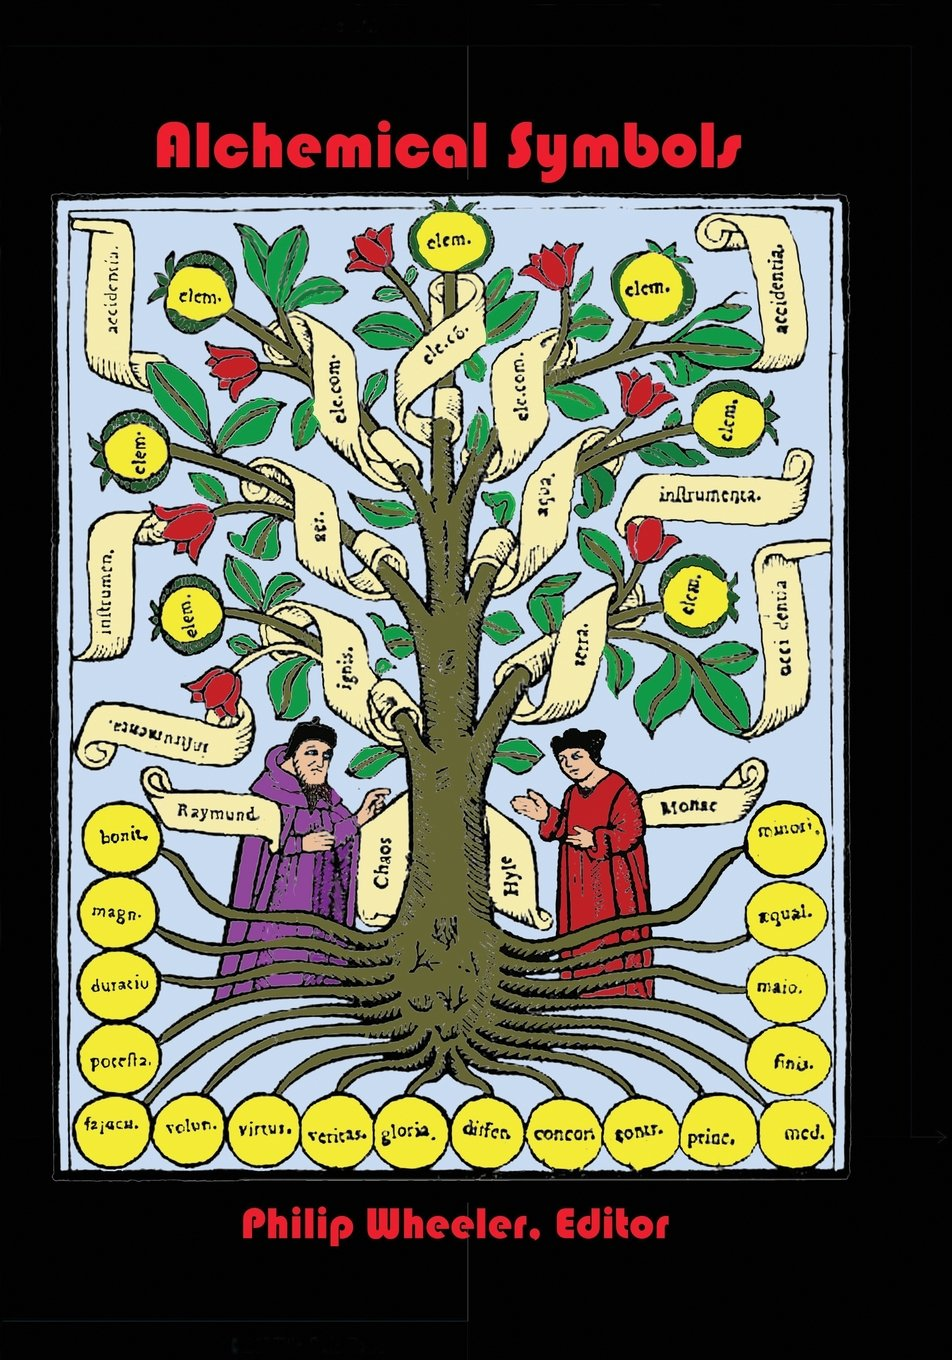 Alchemical Symbols Tables Of Alchemical Symbols And Gematria With A